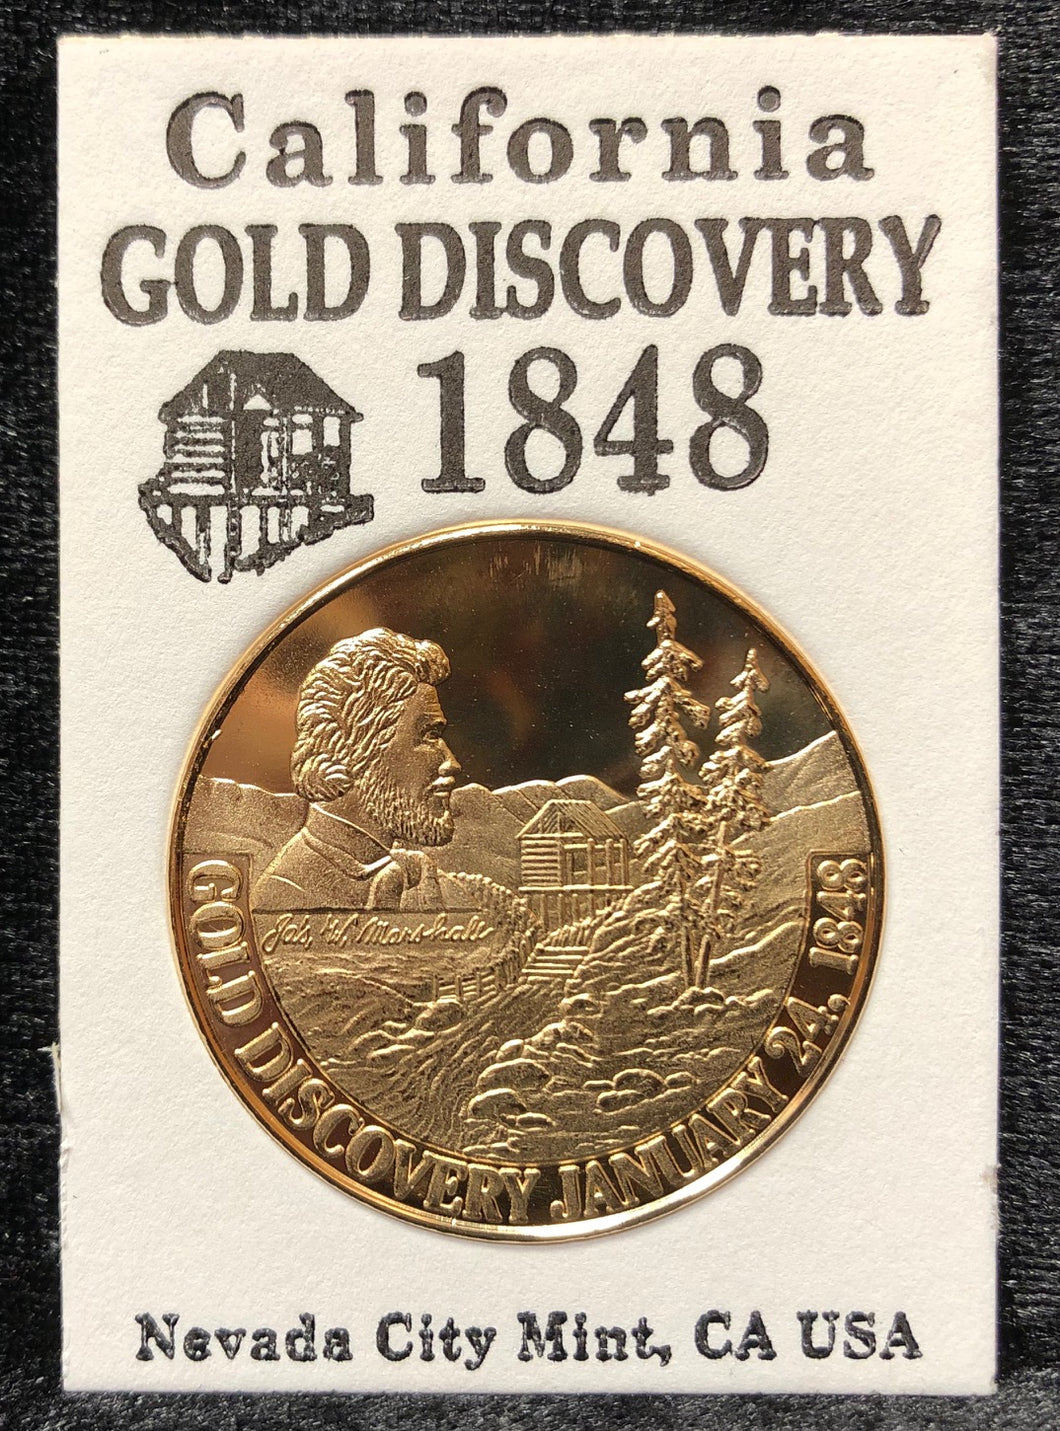 Gold Discovery Commemorative Coin